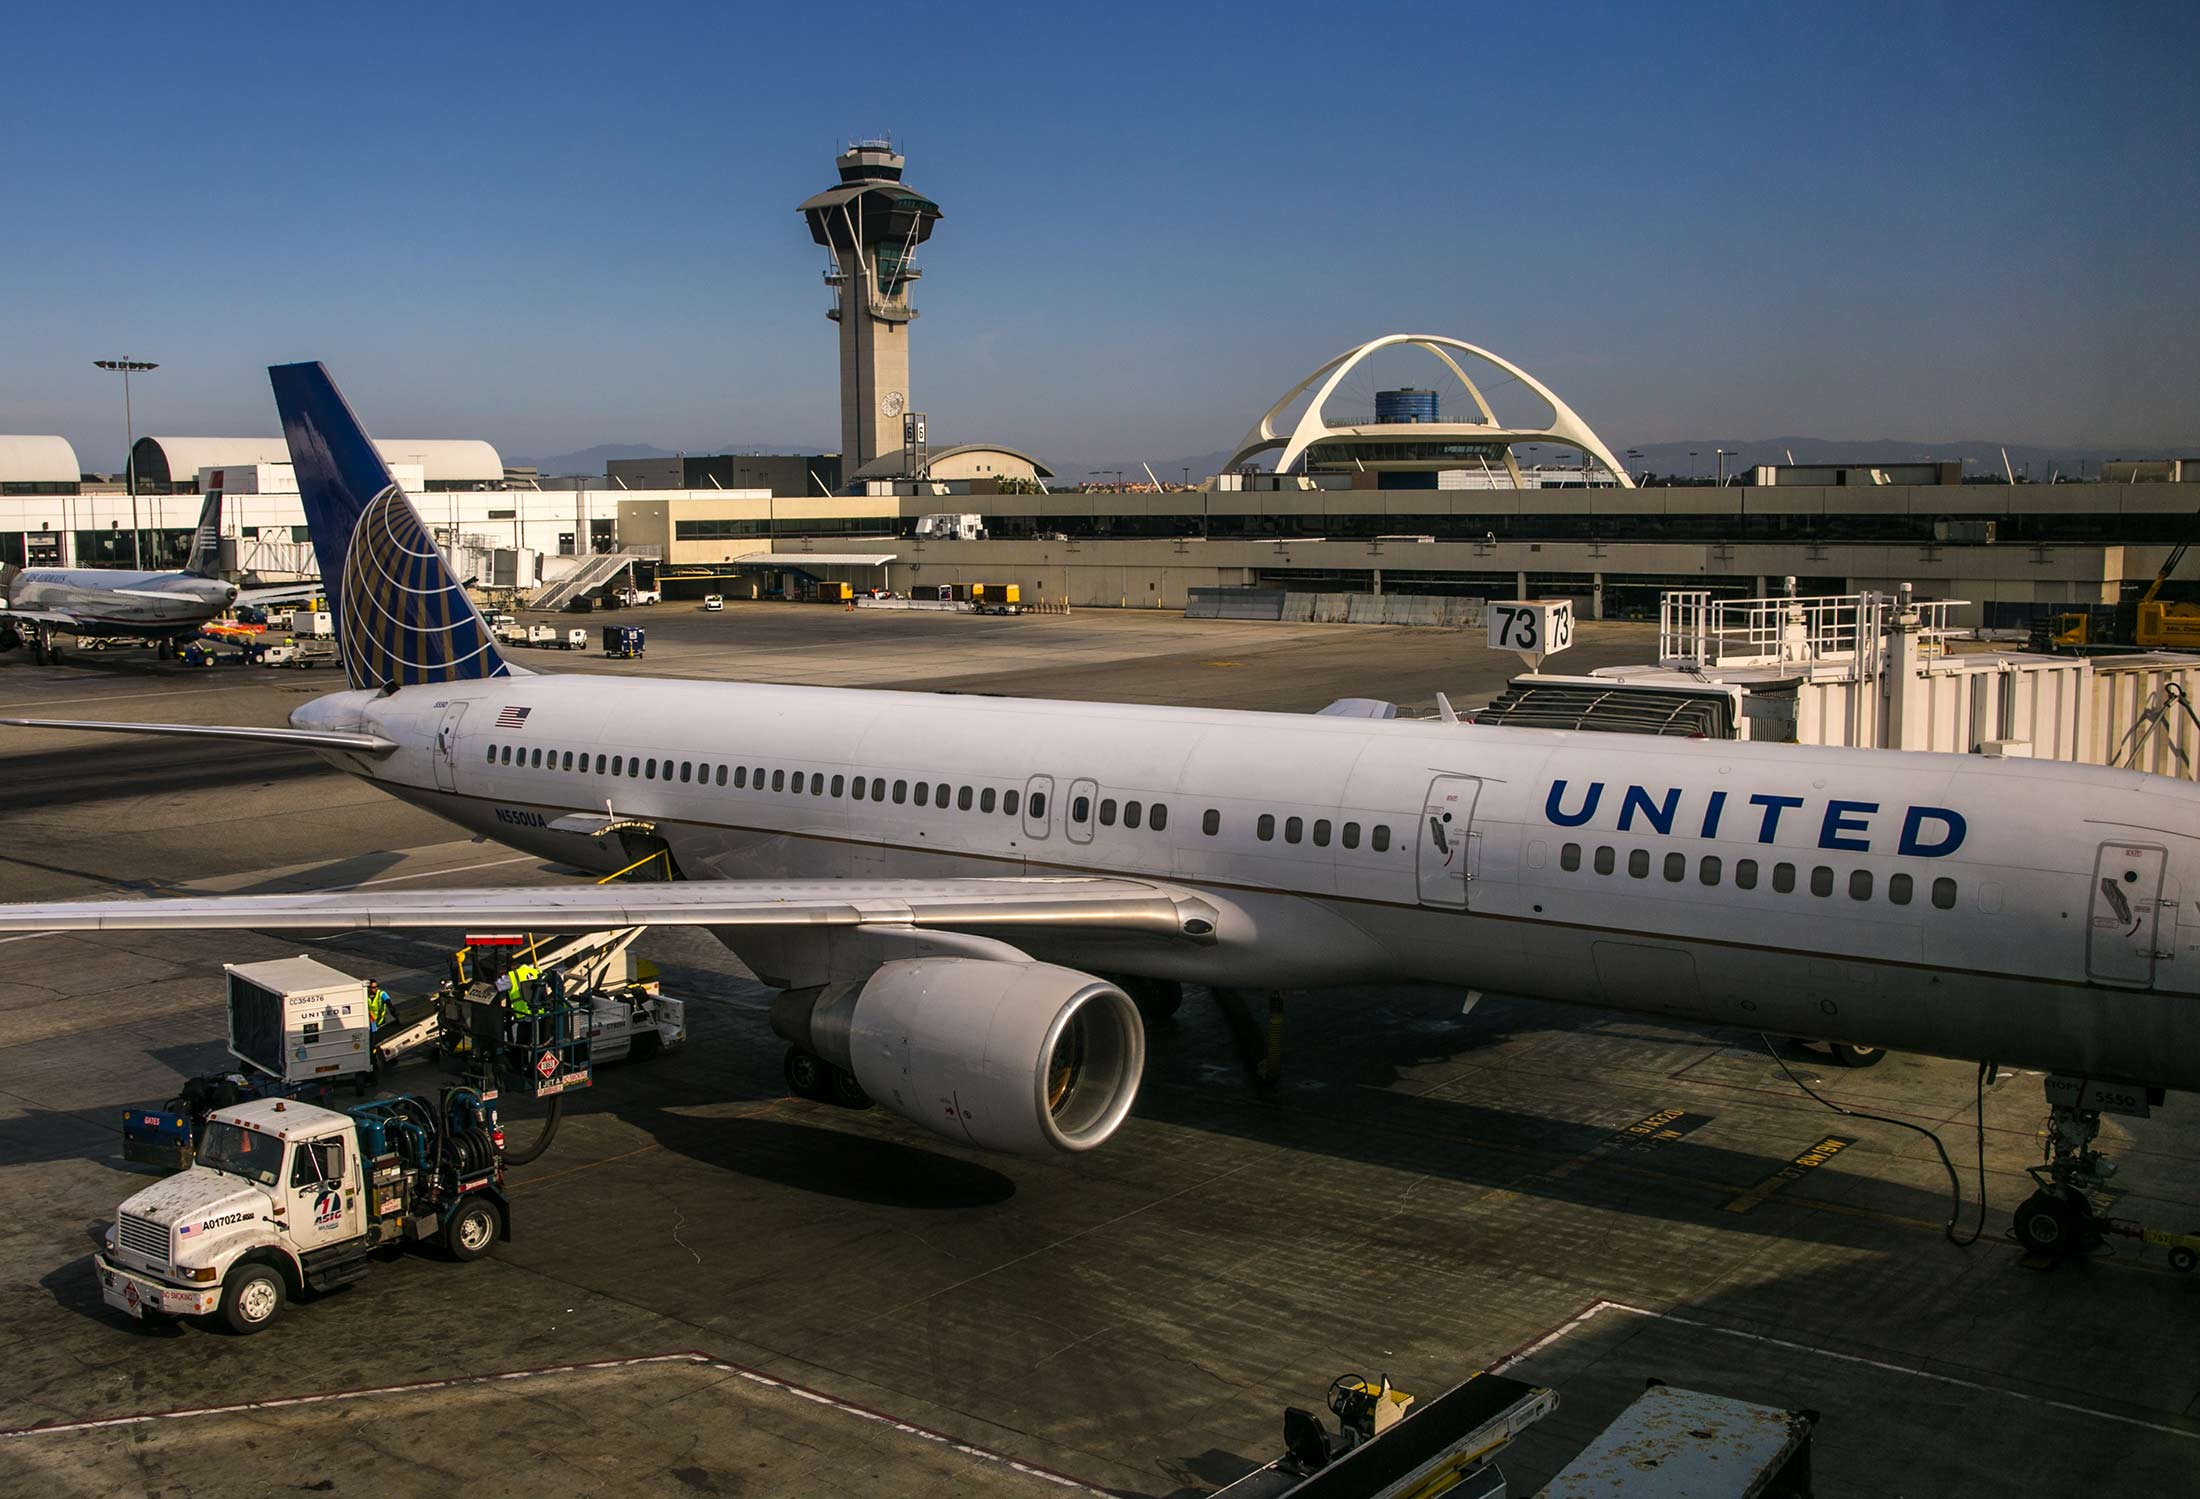 united airlines said to plan los angeles push in comeback effort